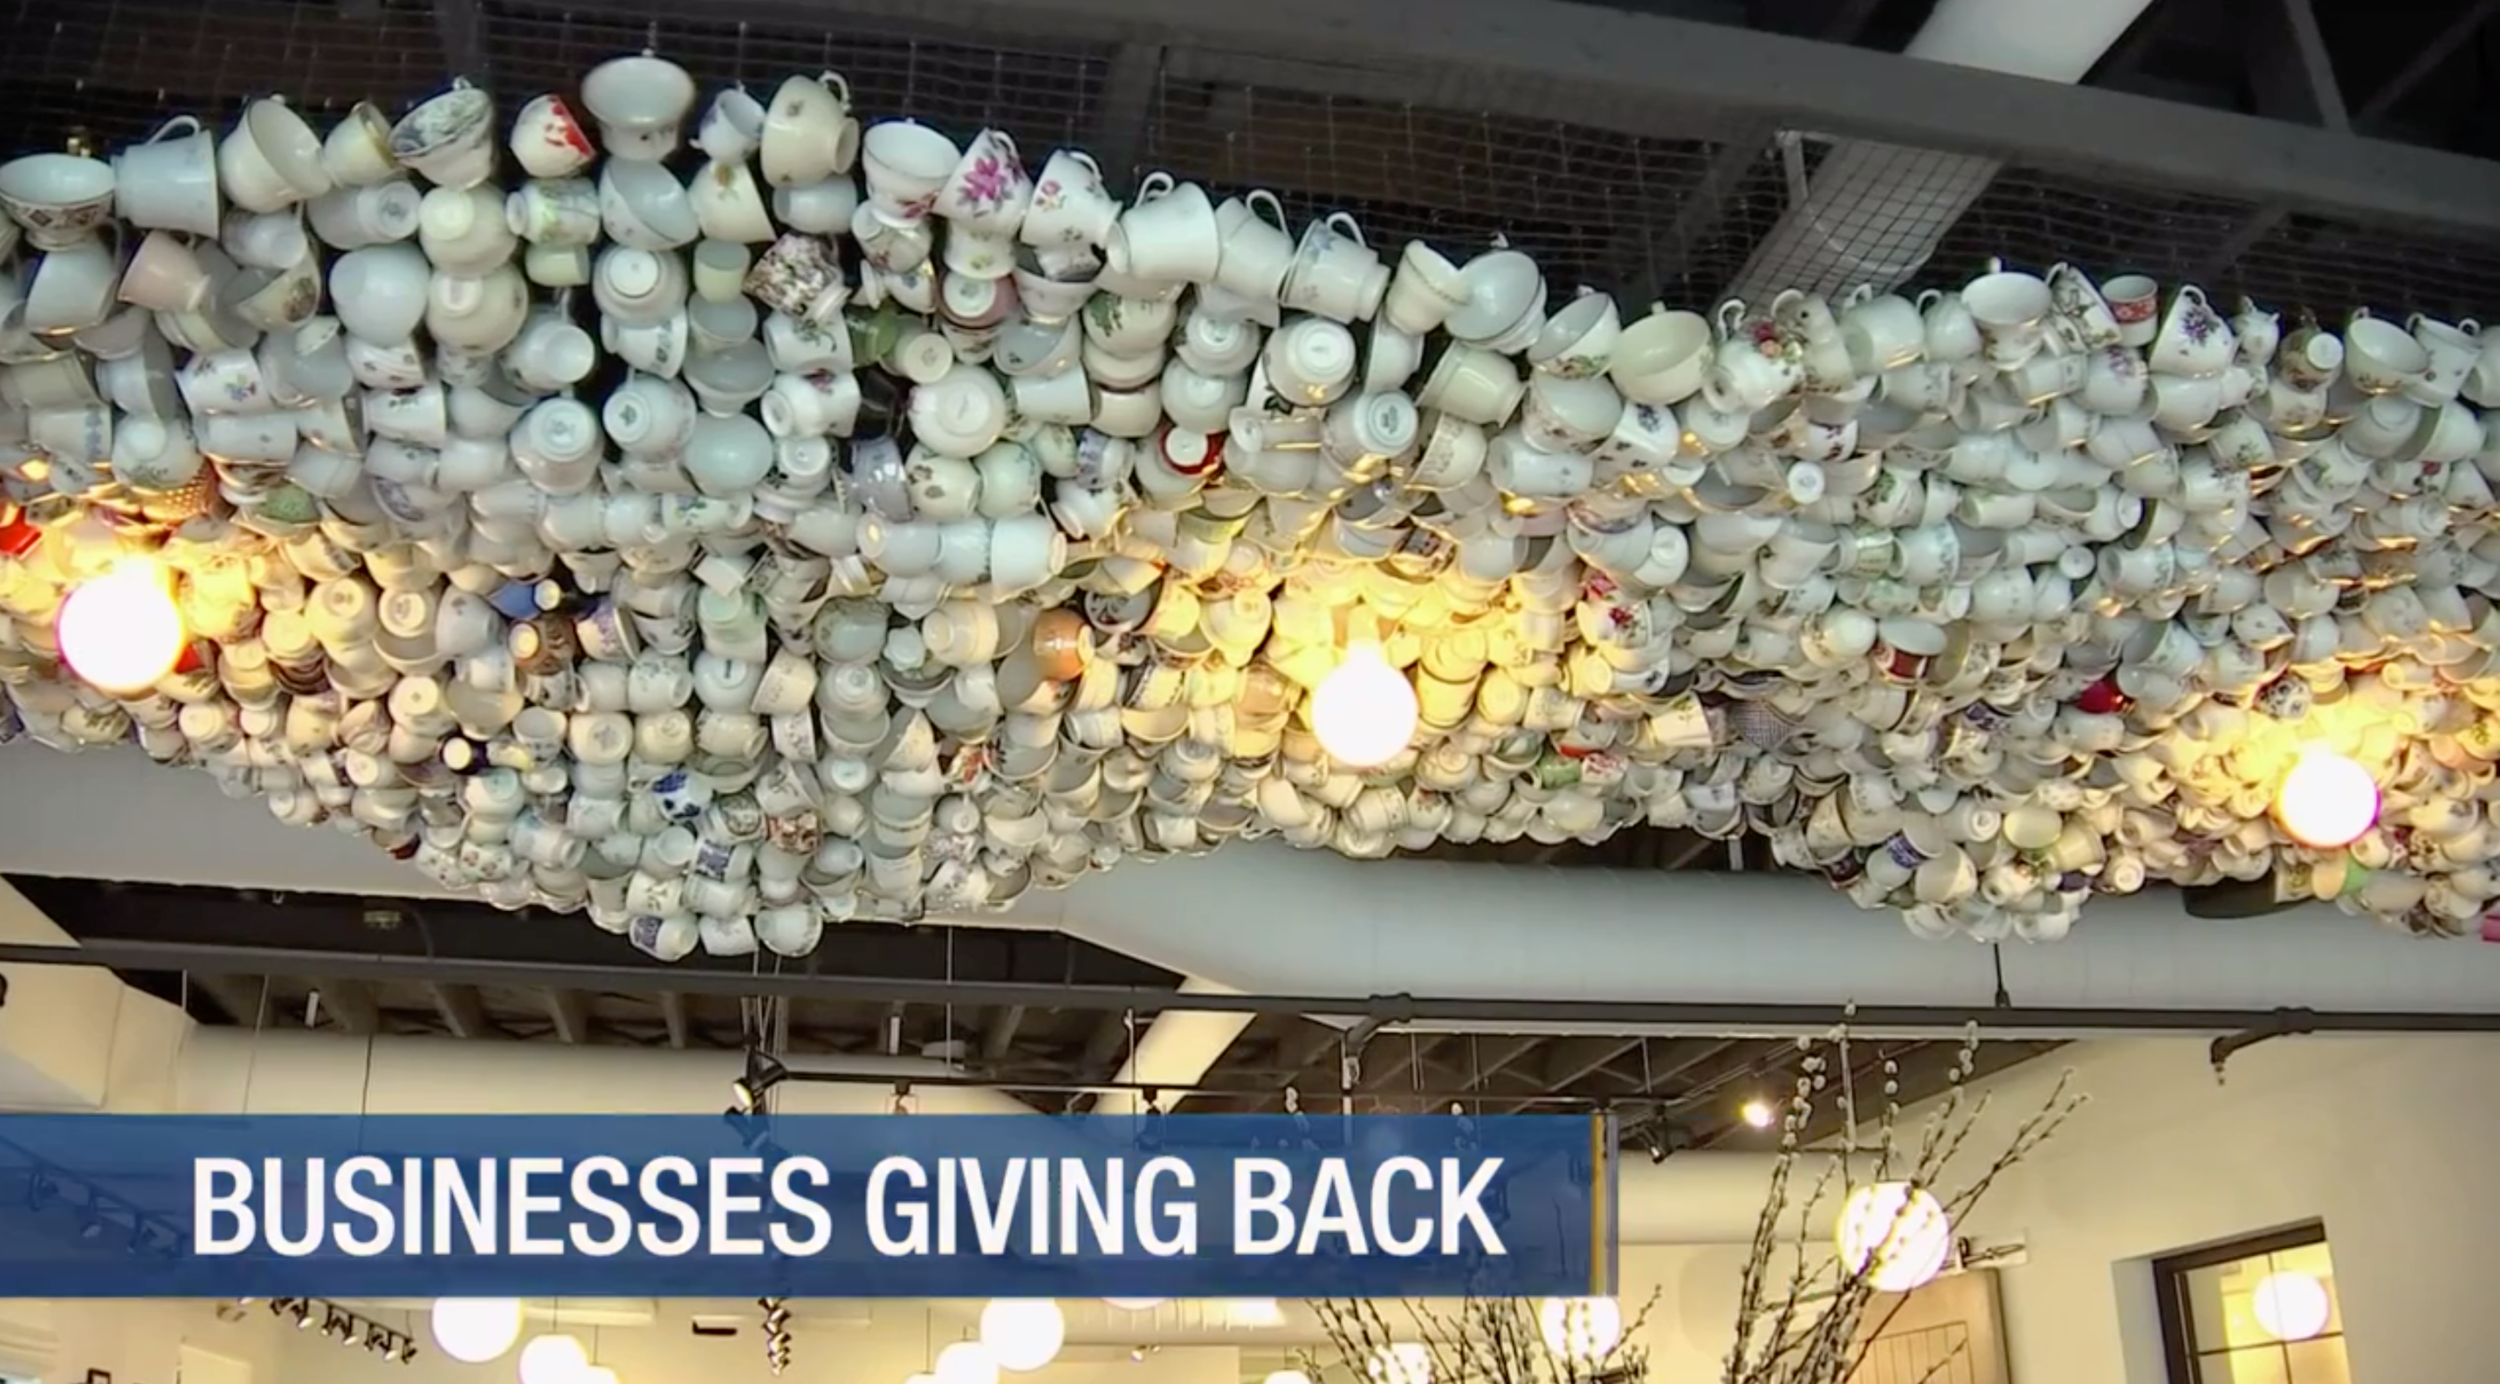 WSMV    Thistle Farms provides jobs for survivors   If you're looking for a way to give back to others, several Nashville businesses want to help you do just that.